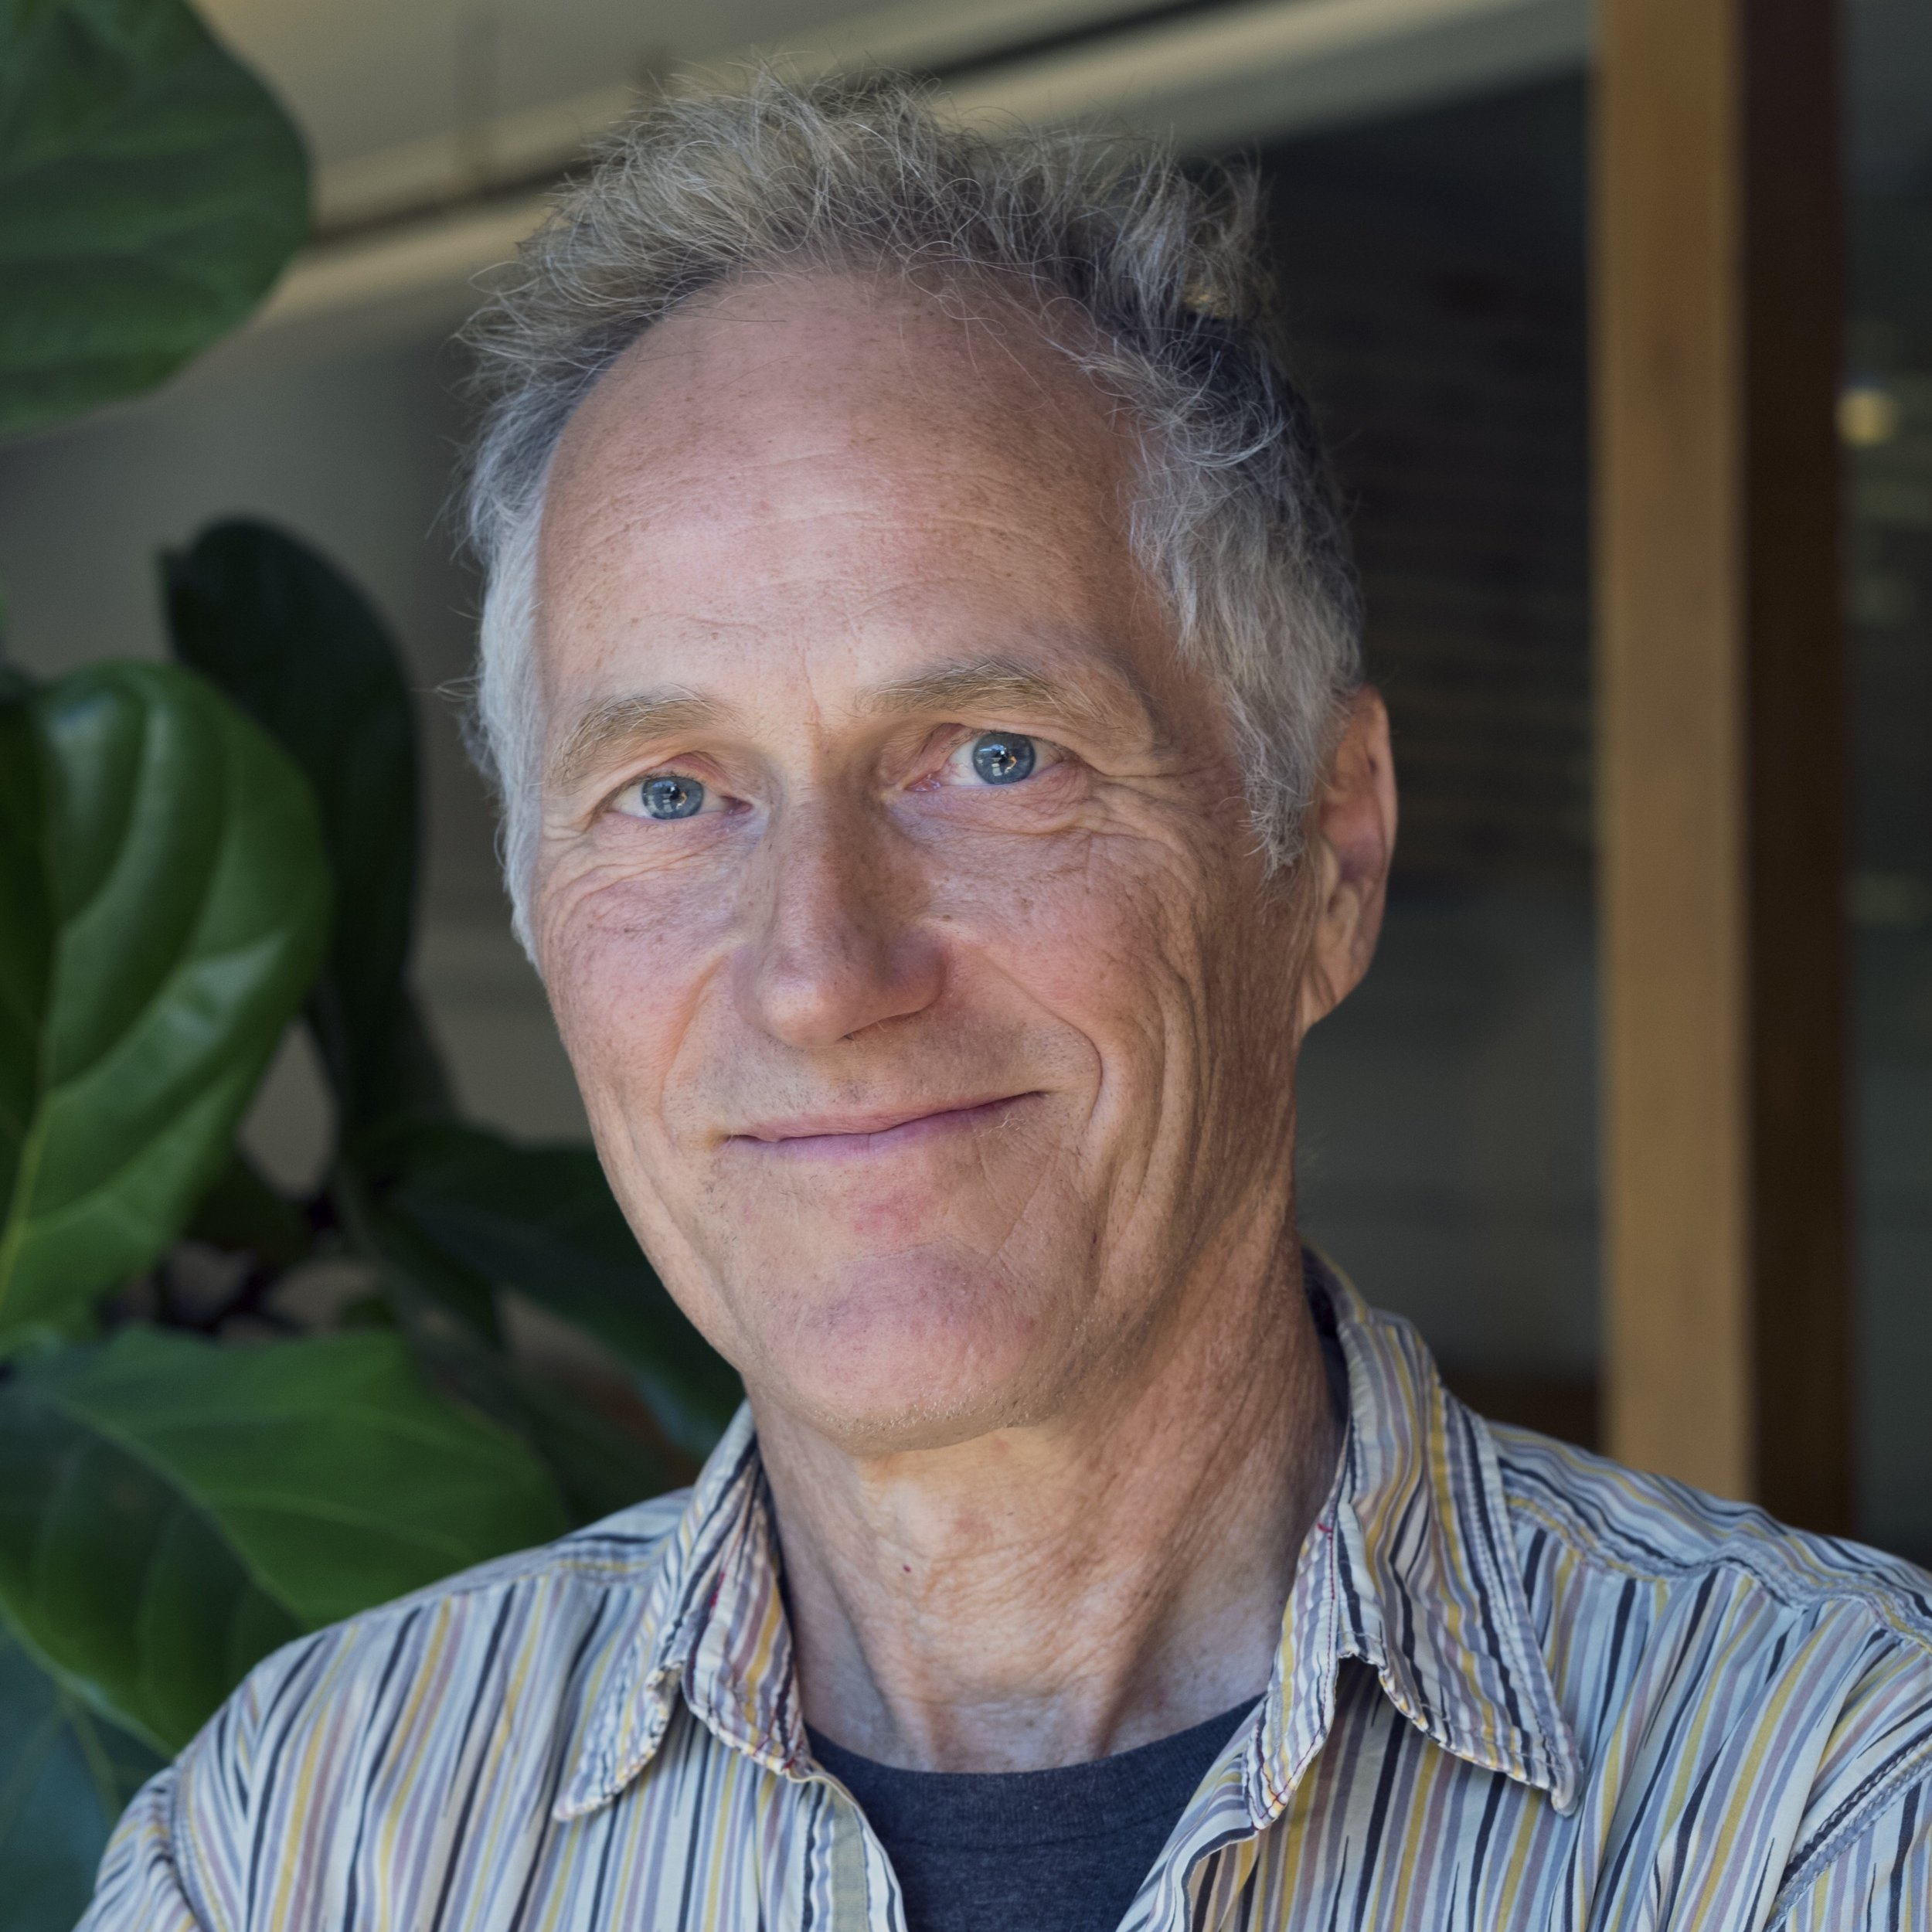 Tim O'Reilly   The Silicon Valley entrepreneur who is convening conversations that reshape the tech sector's impact on society